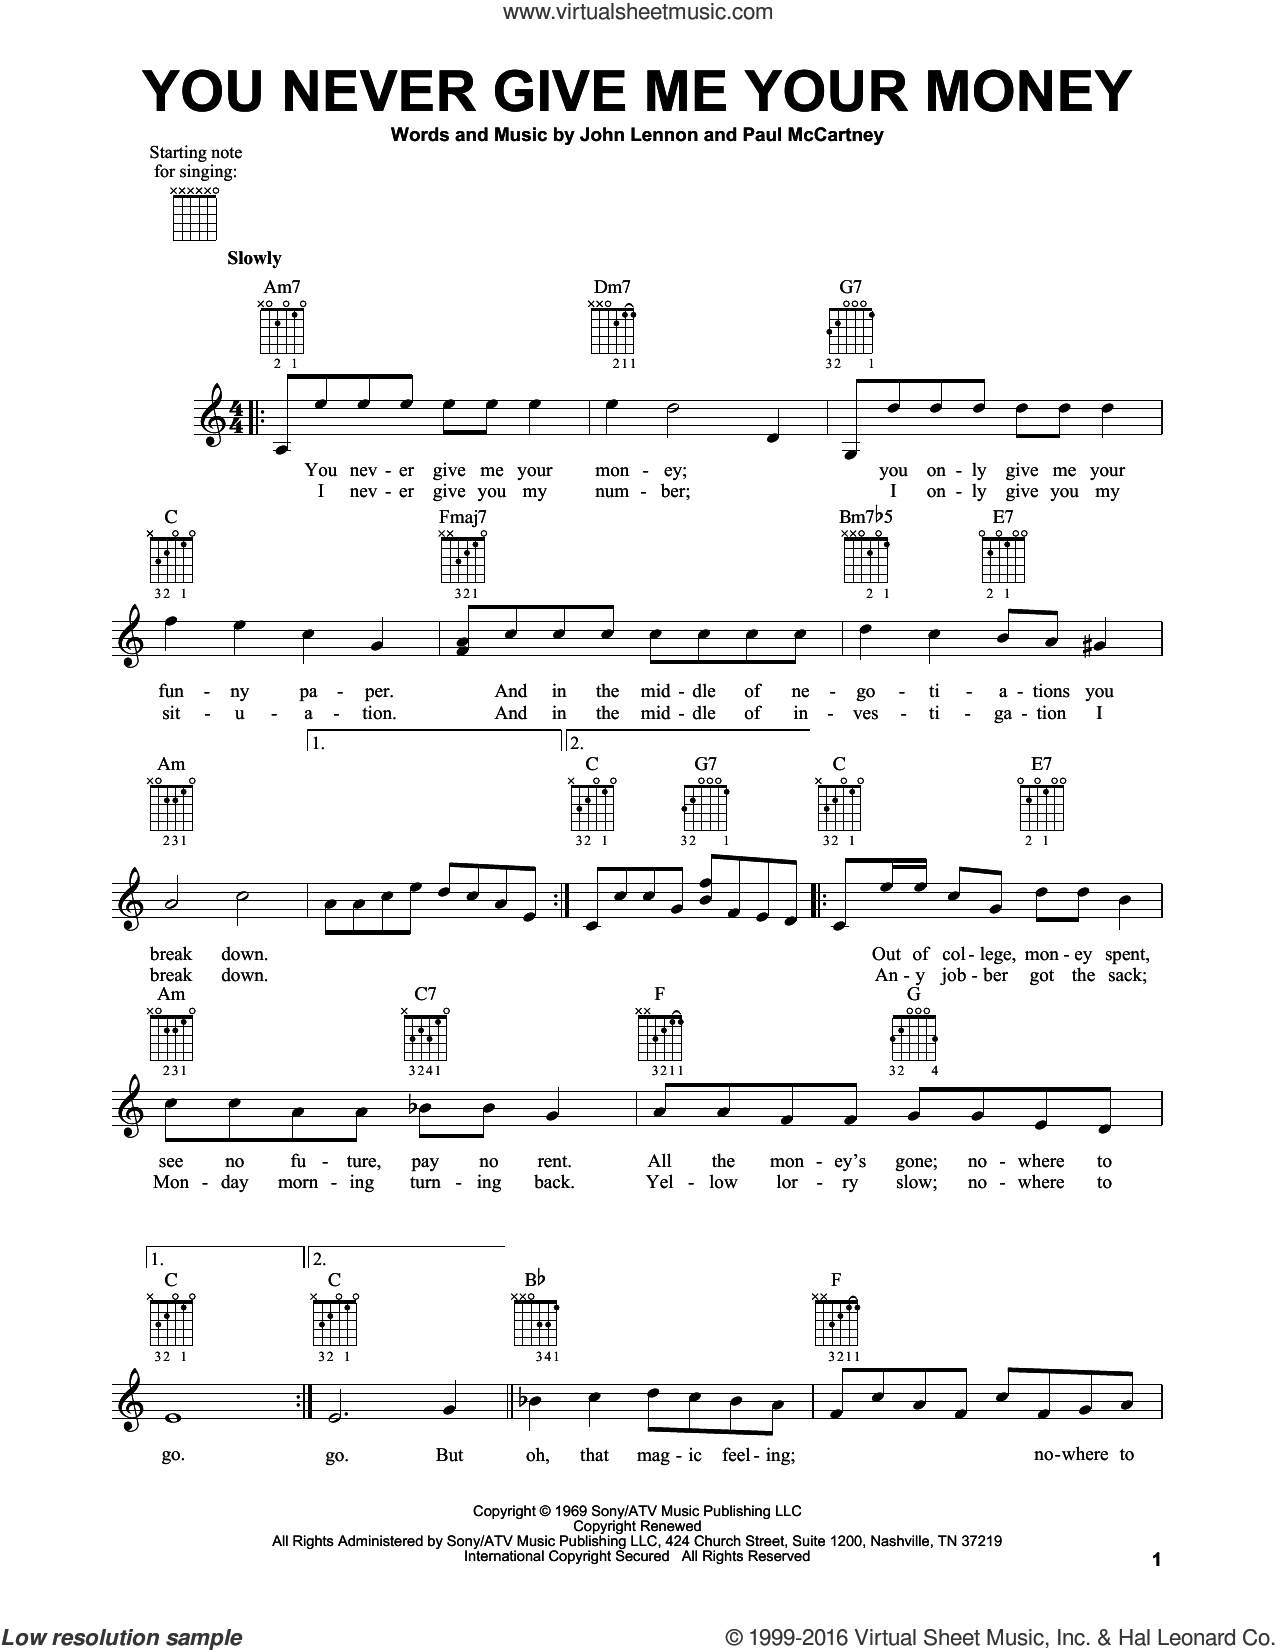 You Never Give Me Your Money sheet music for guitar solo (chords) by The Beatles, John Lennon and Paul McCartney, easy guitar (chords)